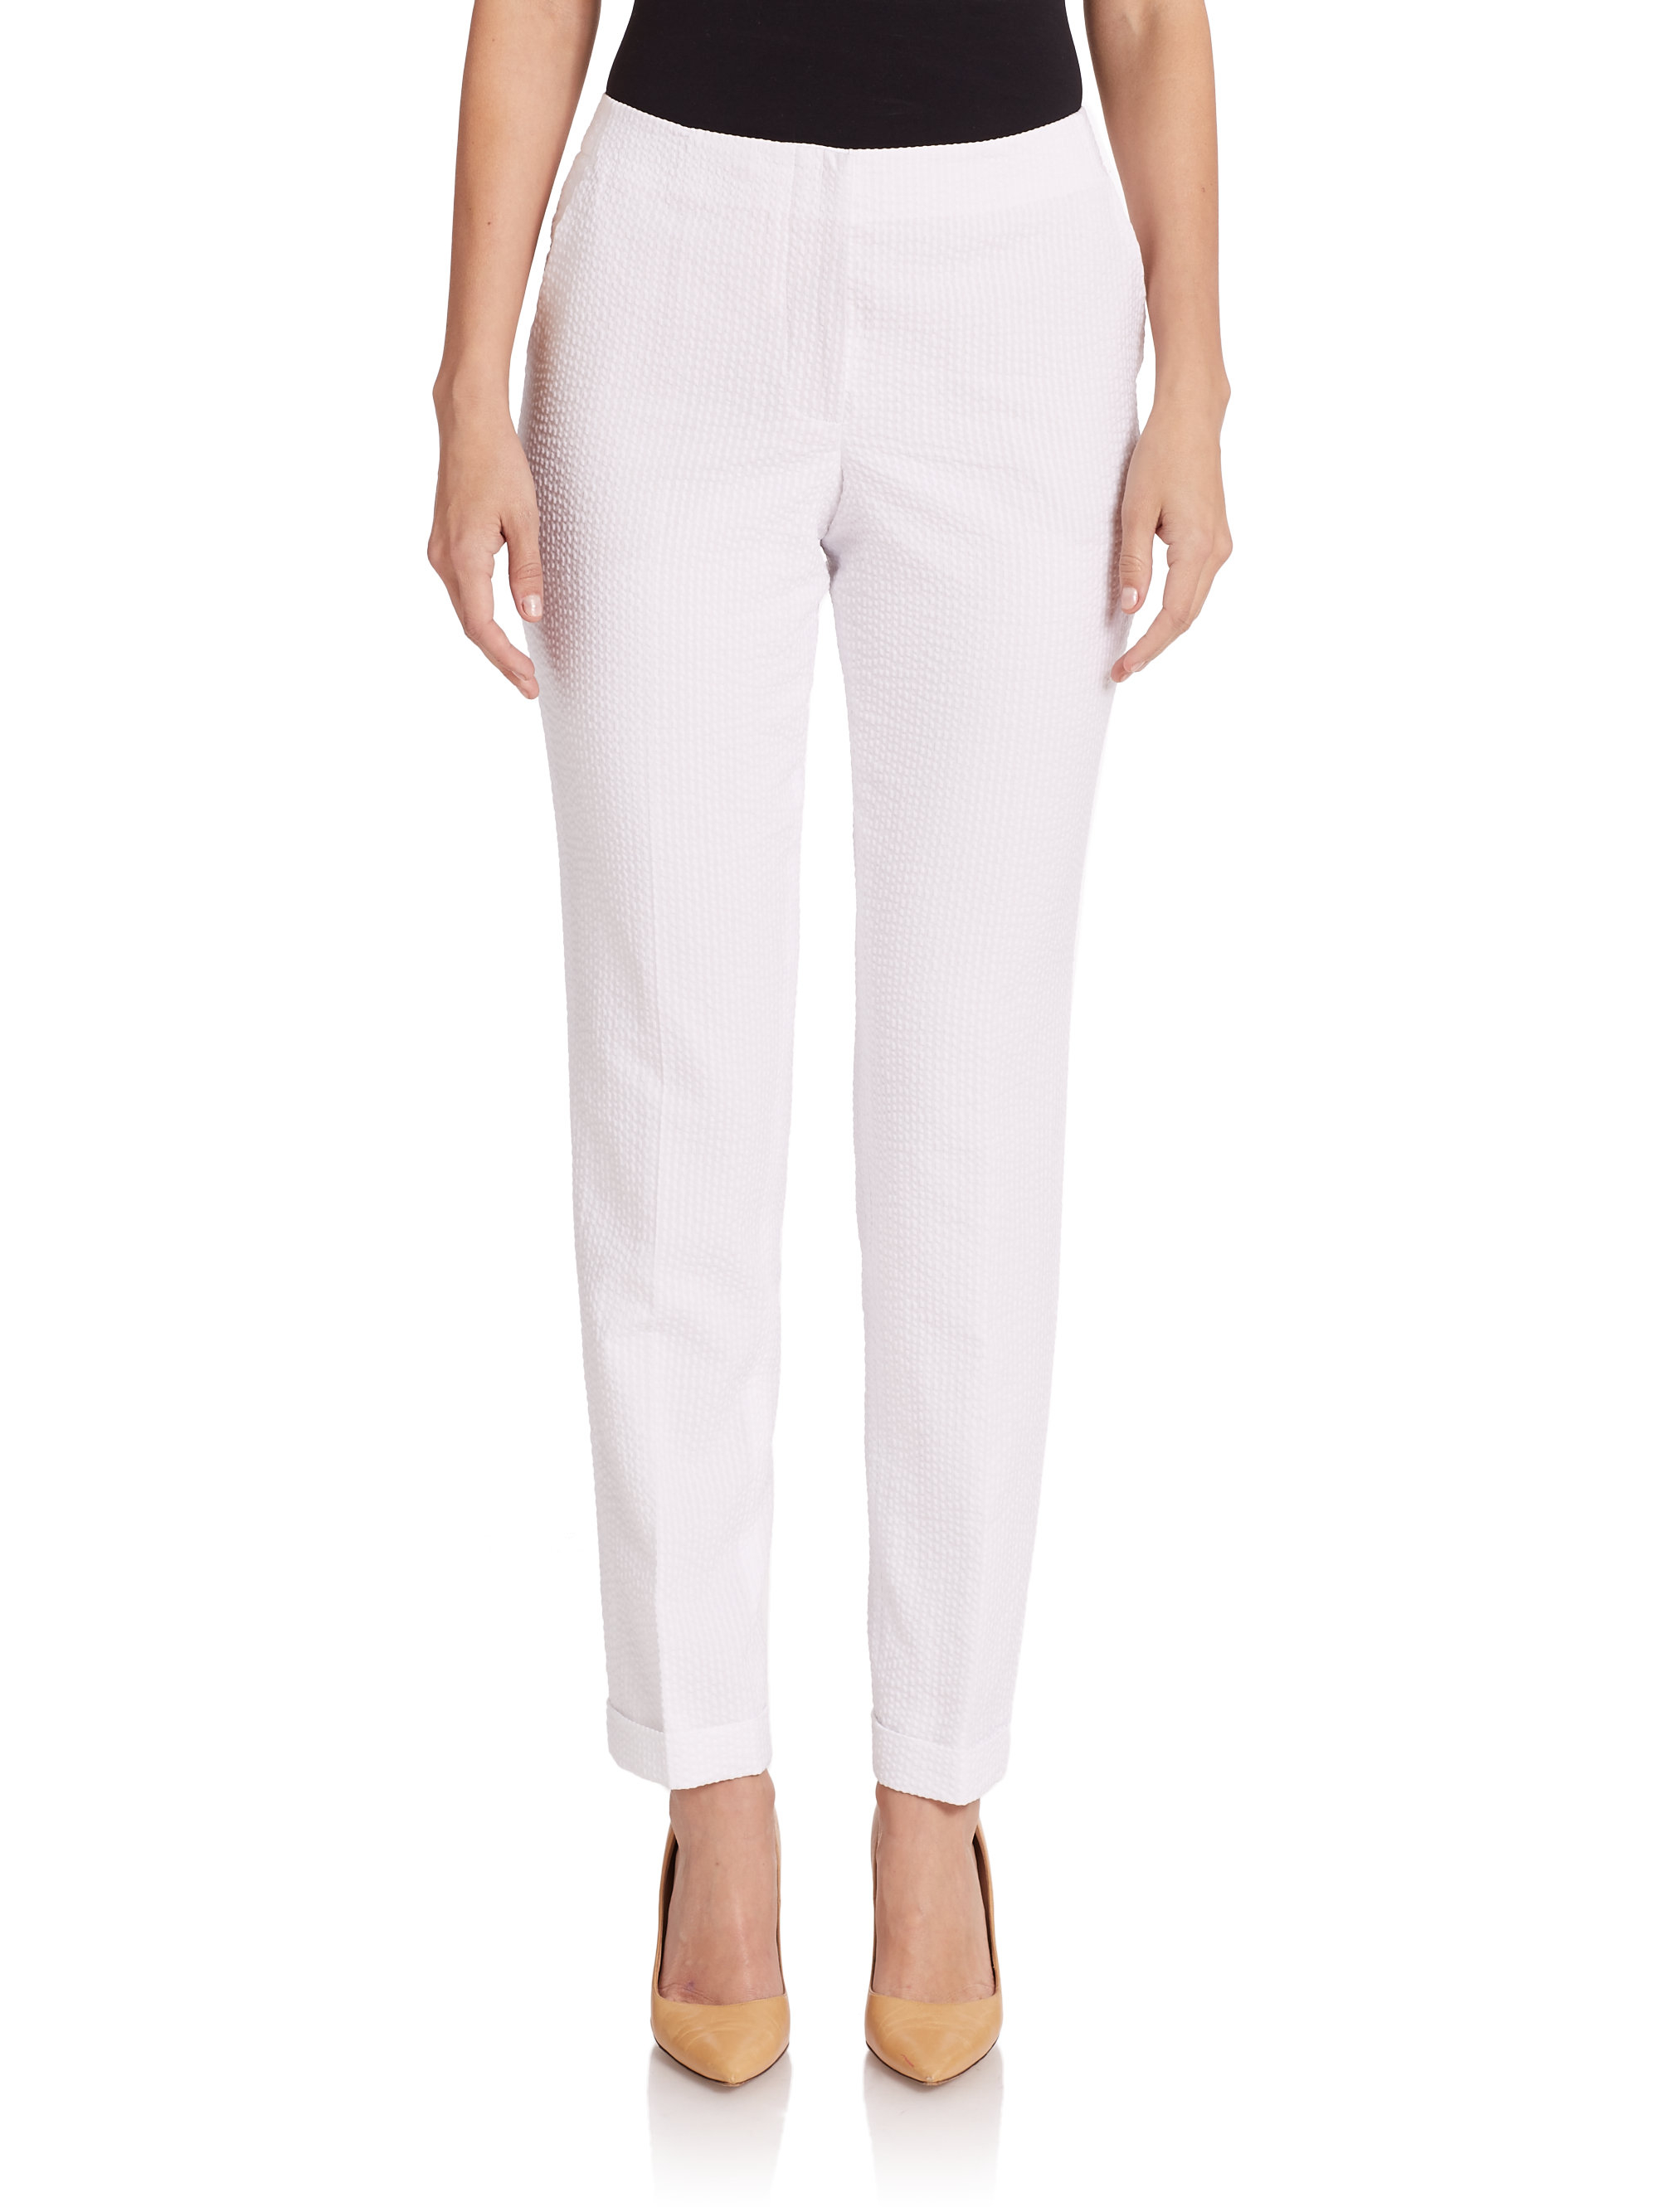 6314deee0388 Lyst - Akris Seersucker Slim-Leg Pants in White